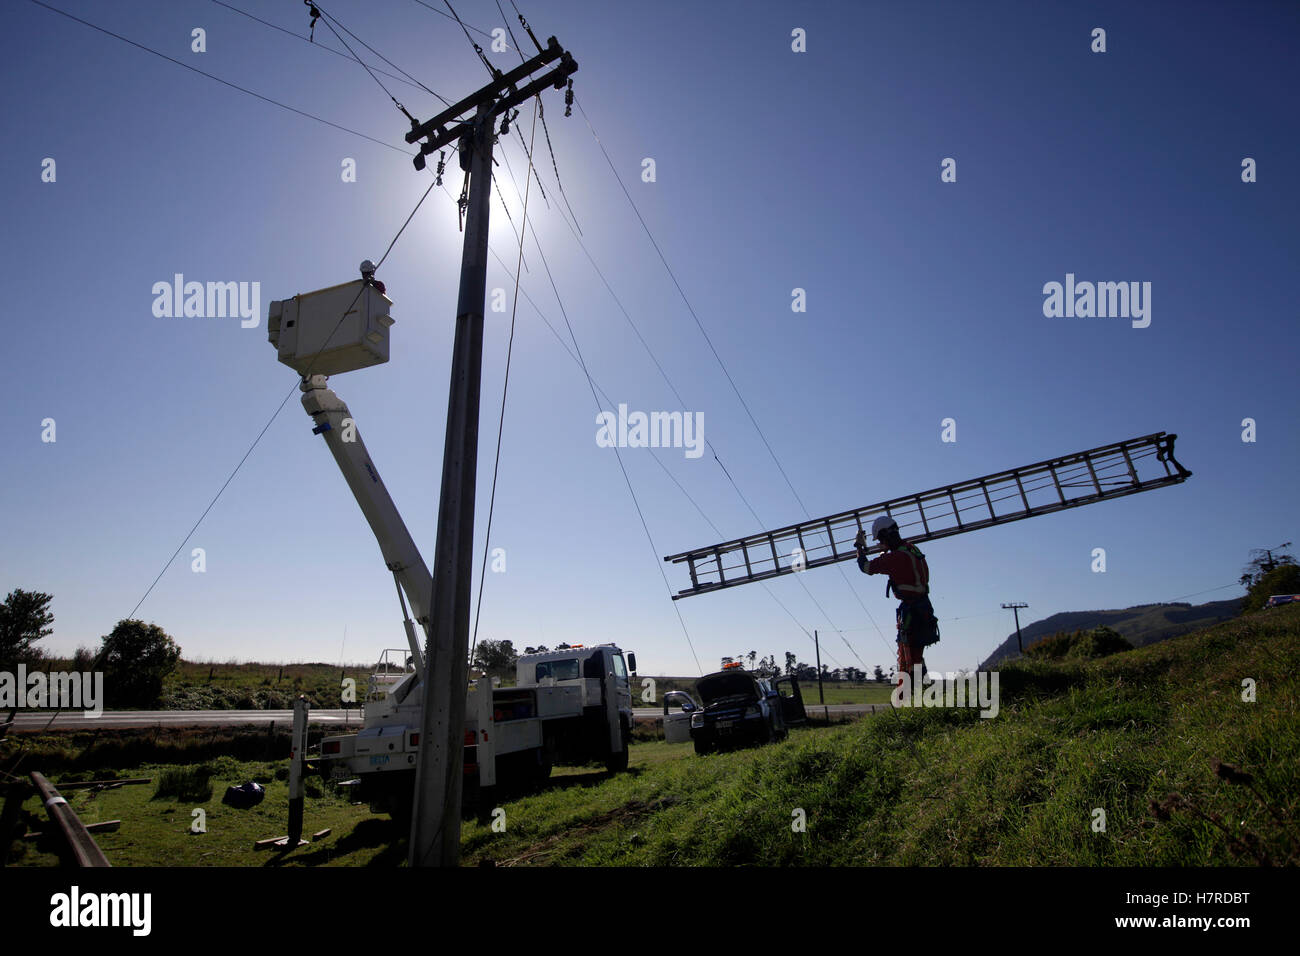 power company workers use a ladder and a cherry picker hoist replacing high voltage power cables - Stock Image